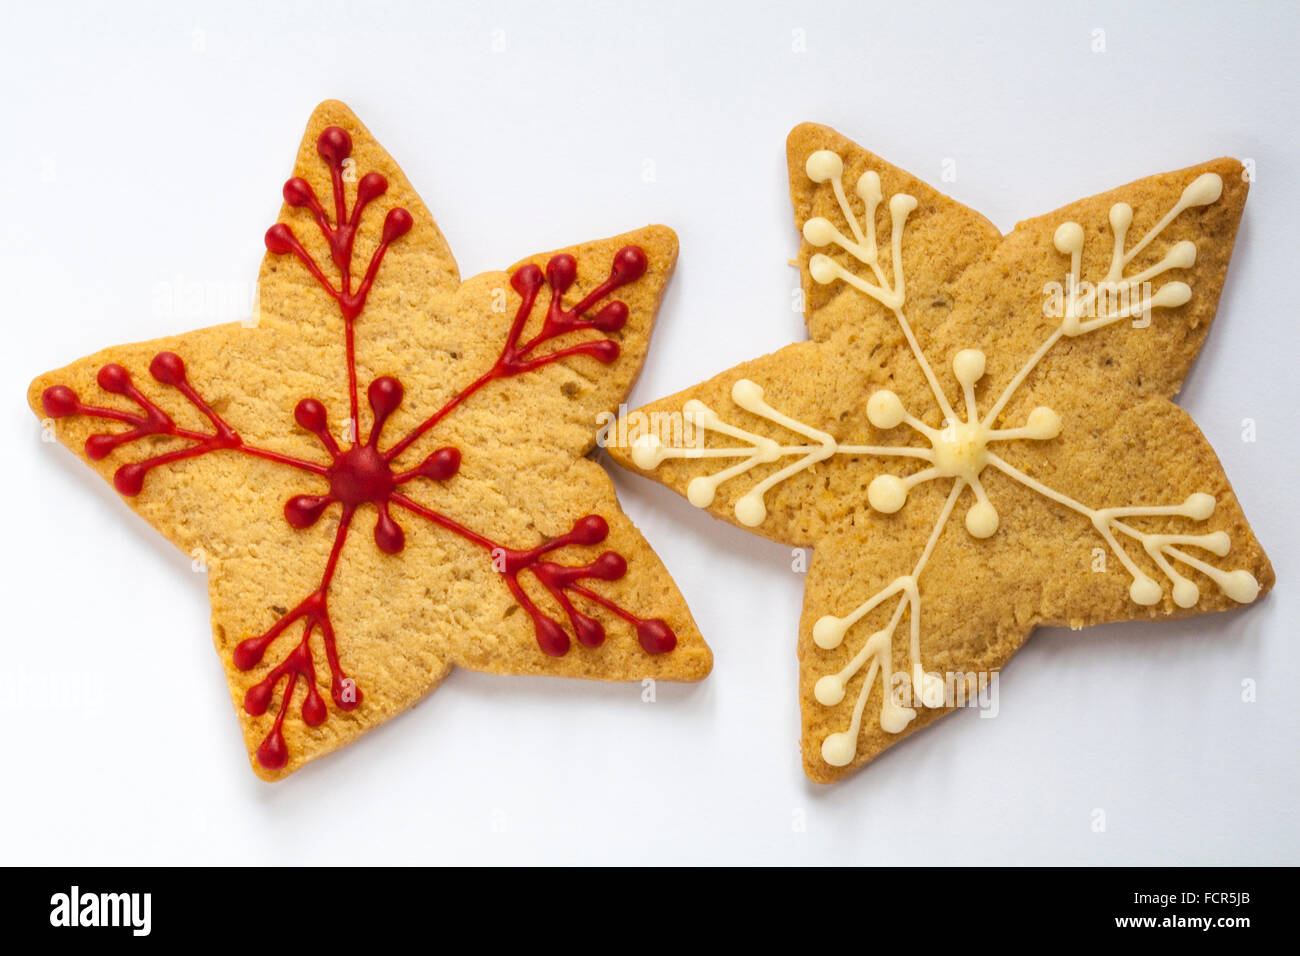 M S Hand Decorated Stem Ginger Cinnamon Star Biscuits Isolated On